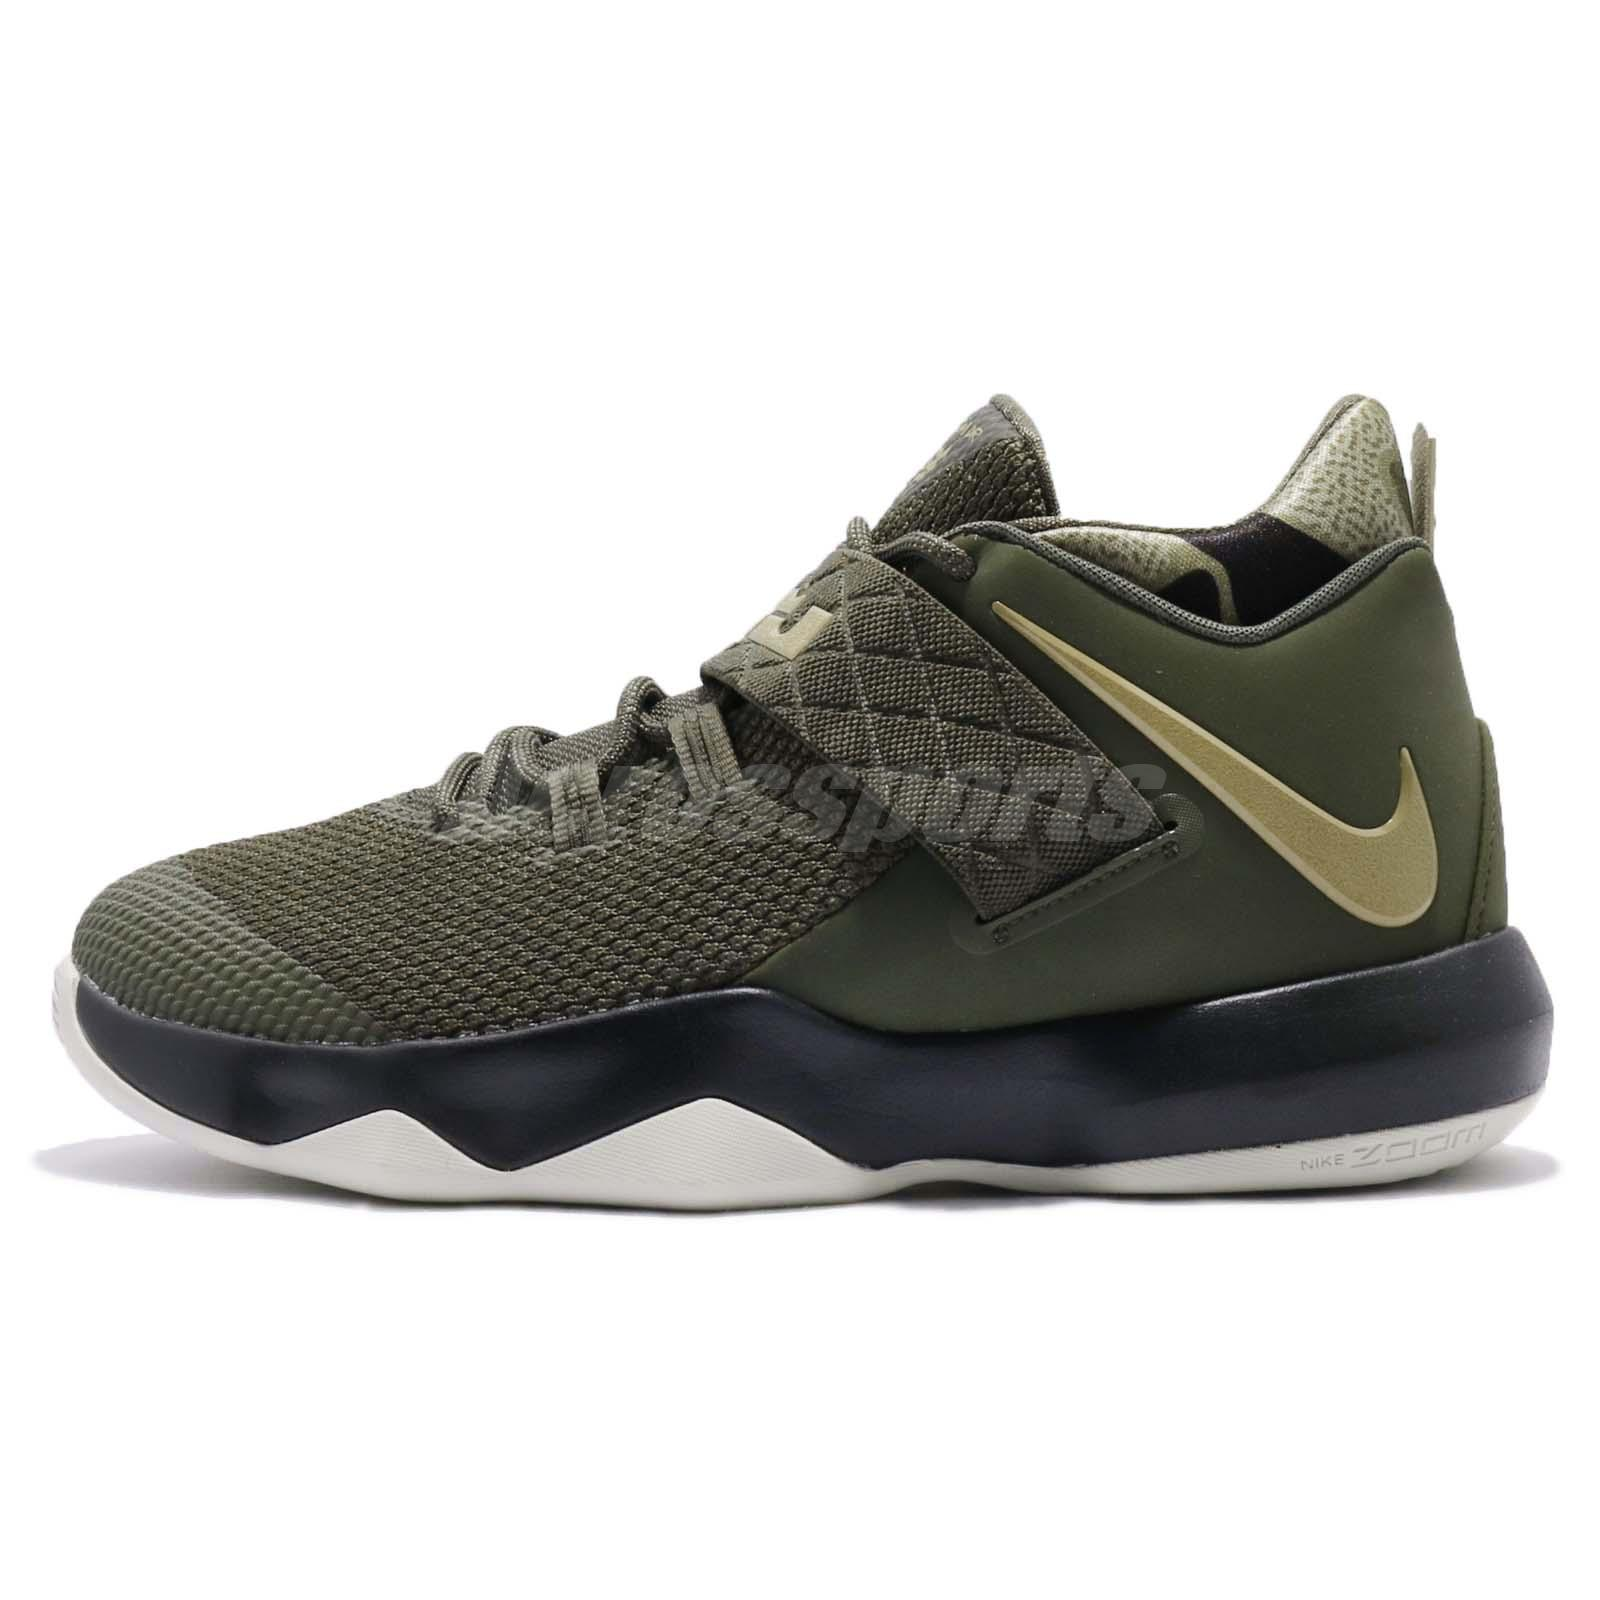 Nike Ambassador X 10 LeBron James Cargo Olive Men Basketball Shoes AH7580300